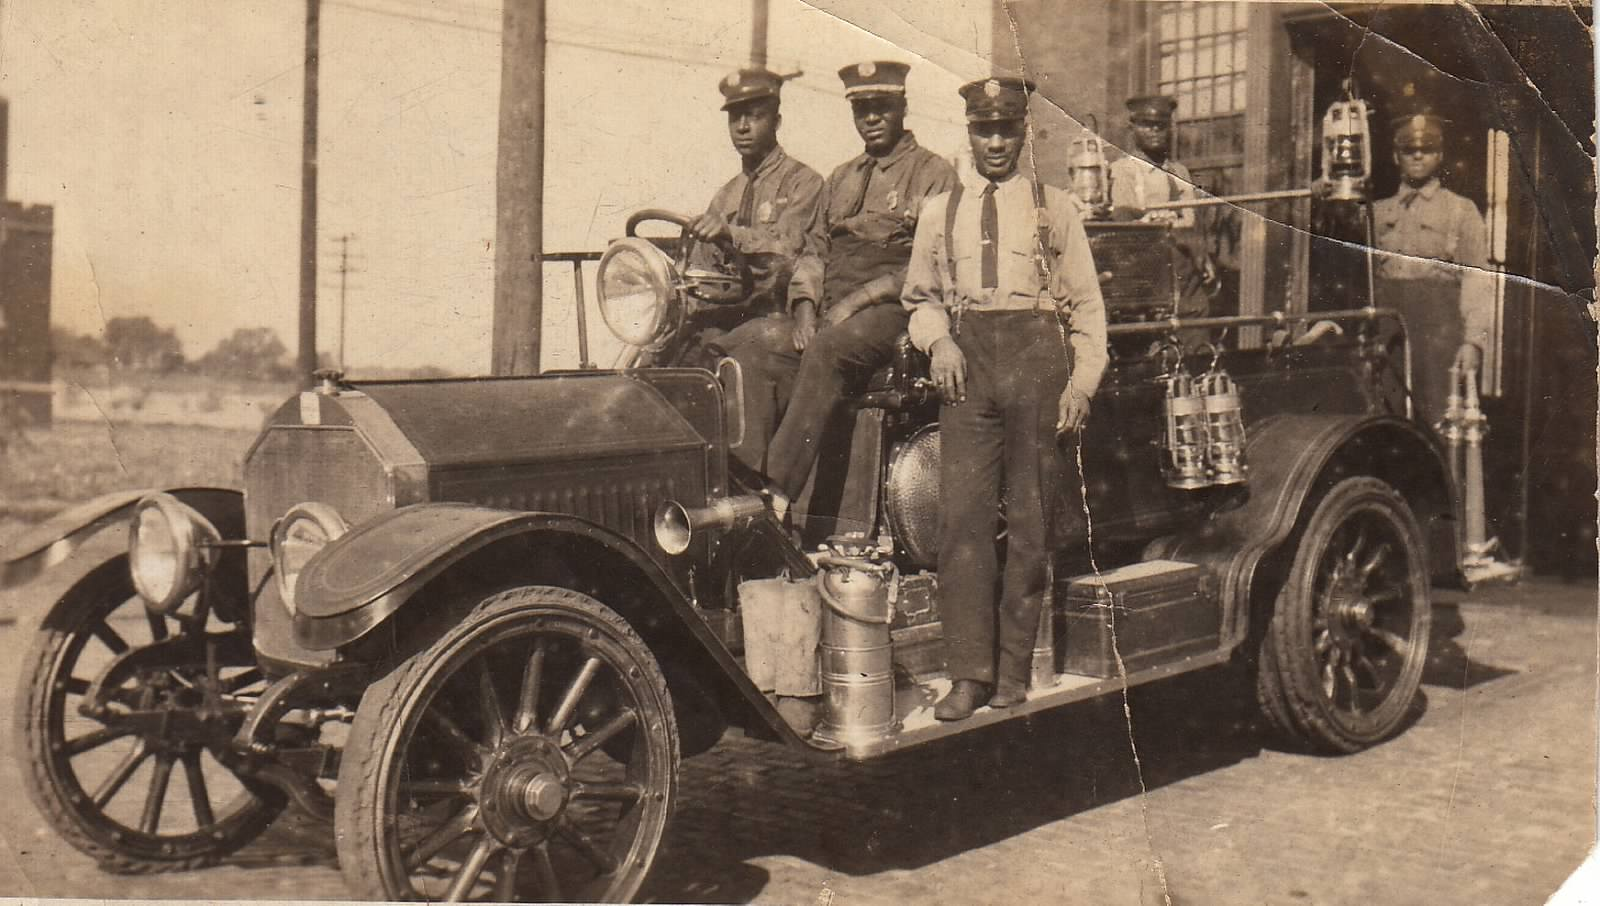 The Fire department motorized in 1916 and 1917.  Source:  Great Plains Black History Museum